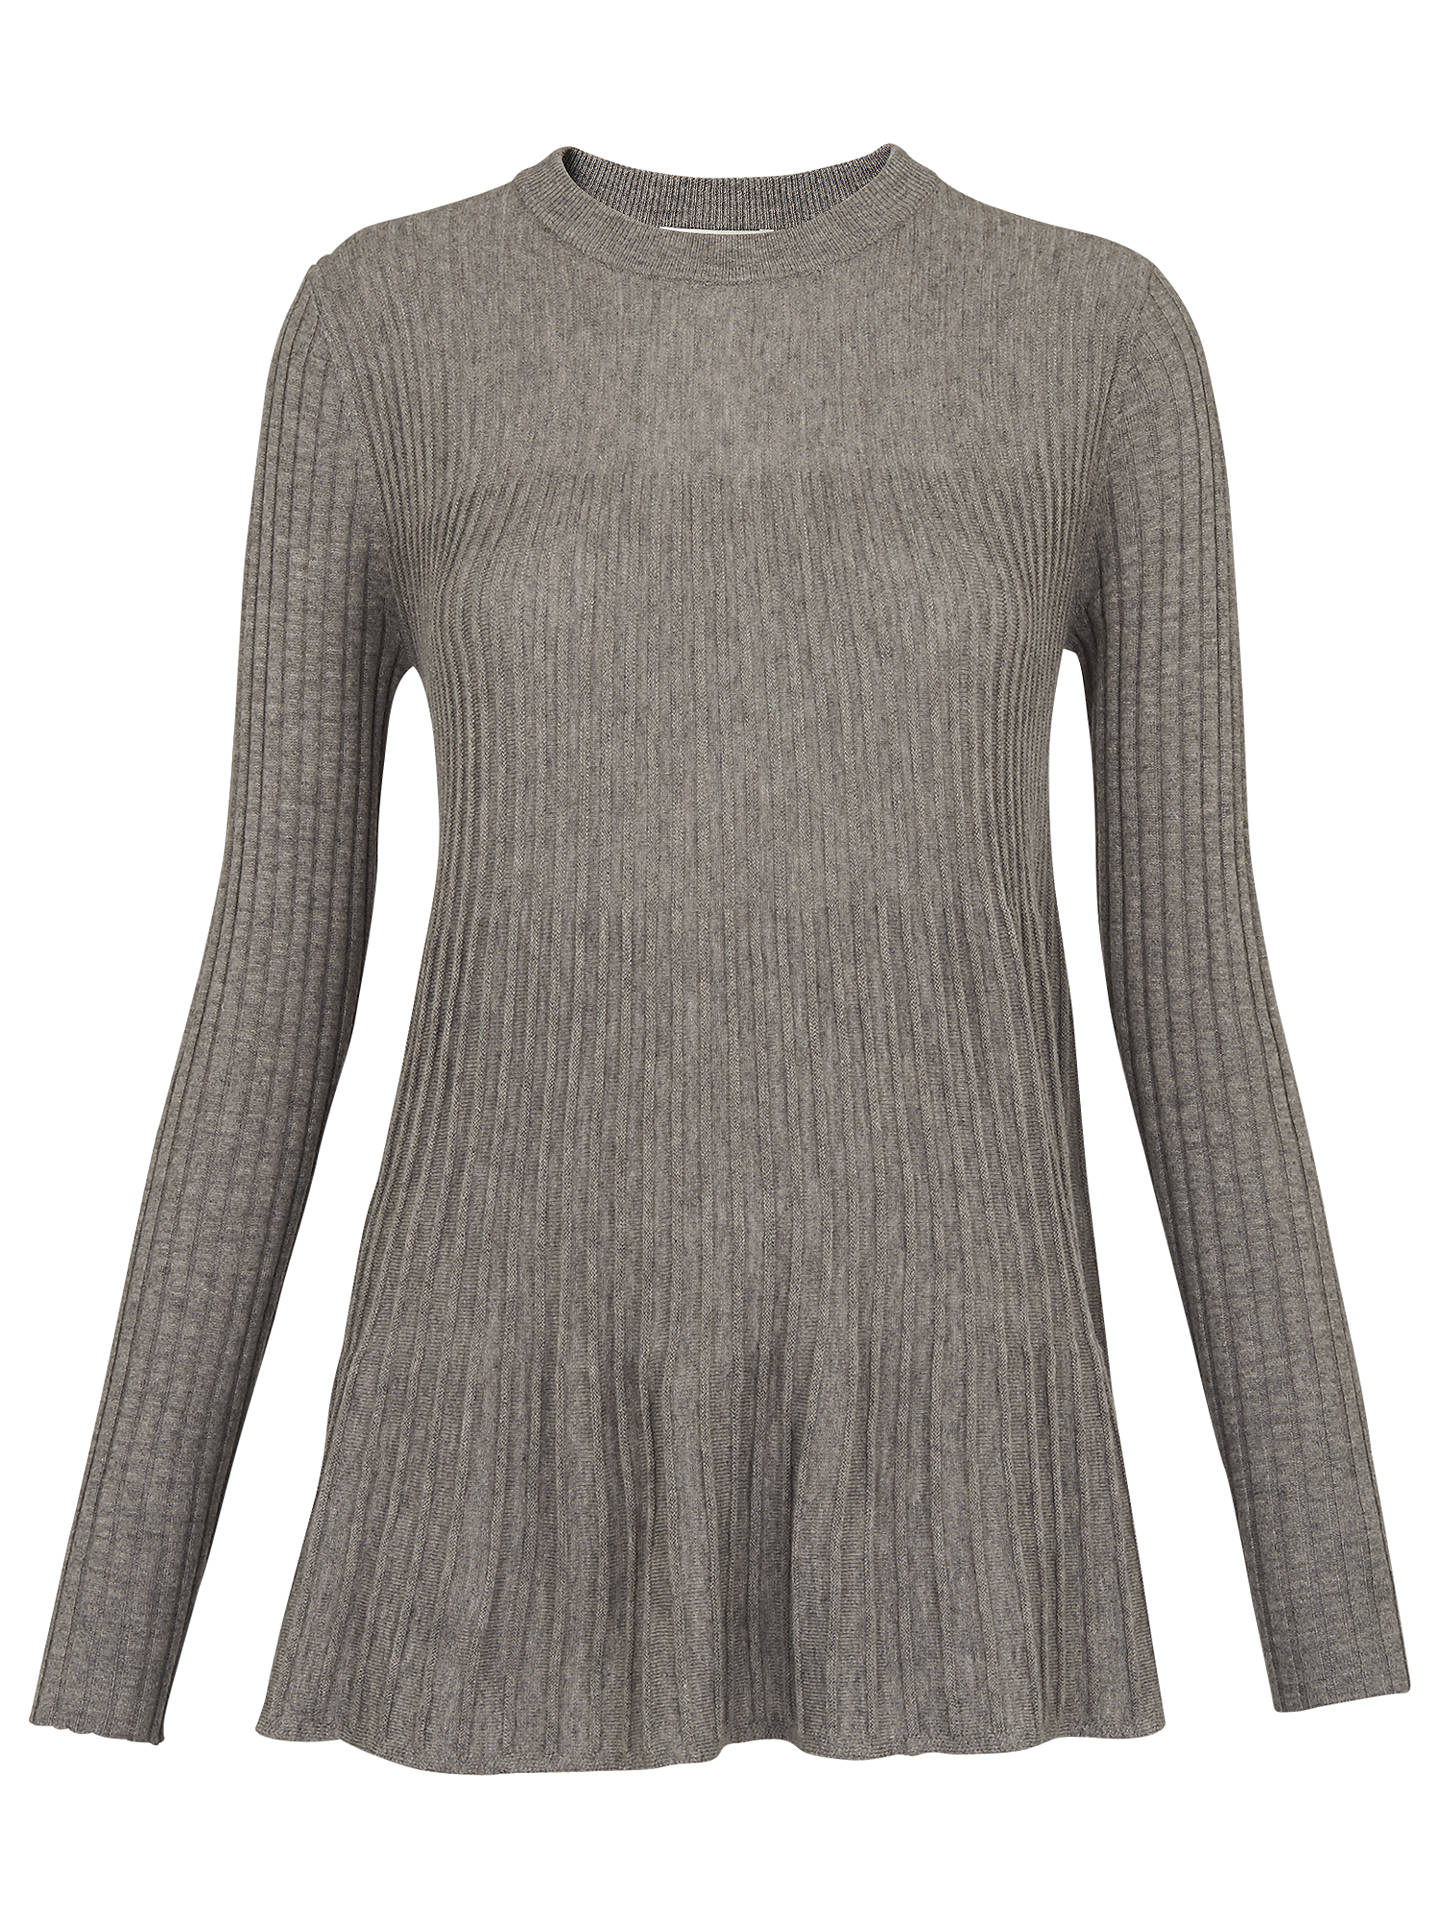 f572d8f38 Whistles Pleat Detail Trapeze Jumper at John Lewis   Partners